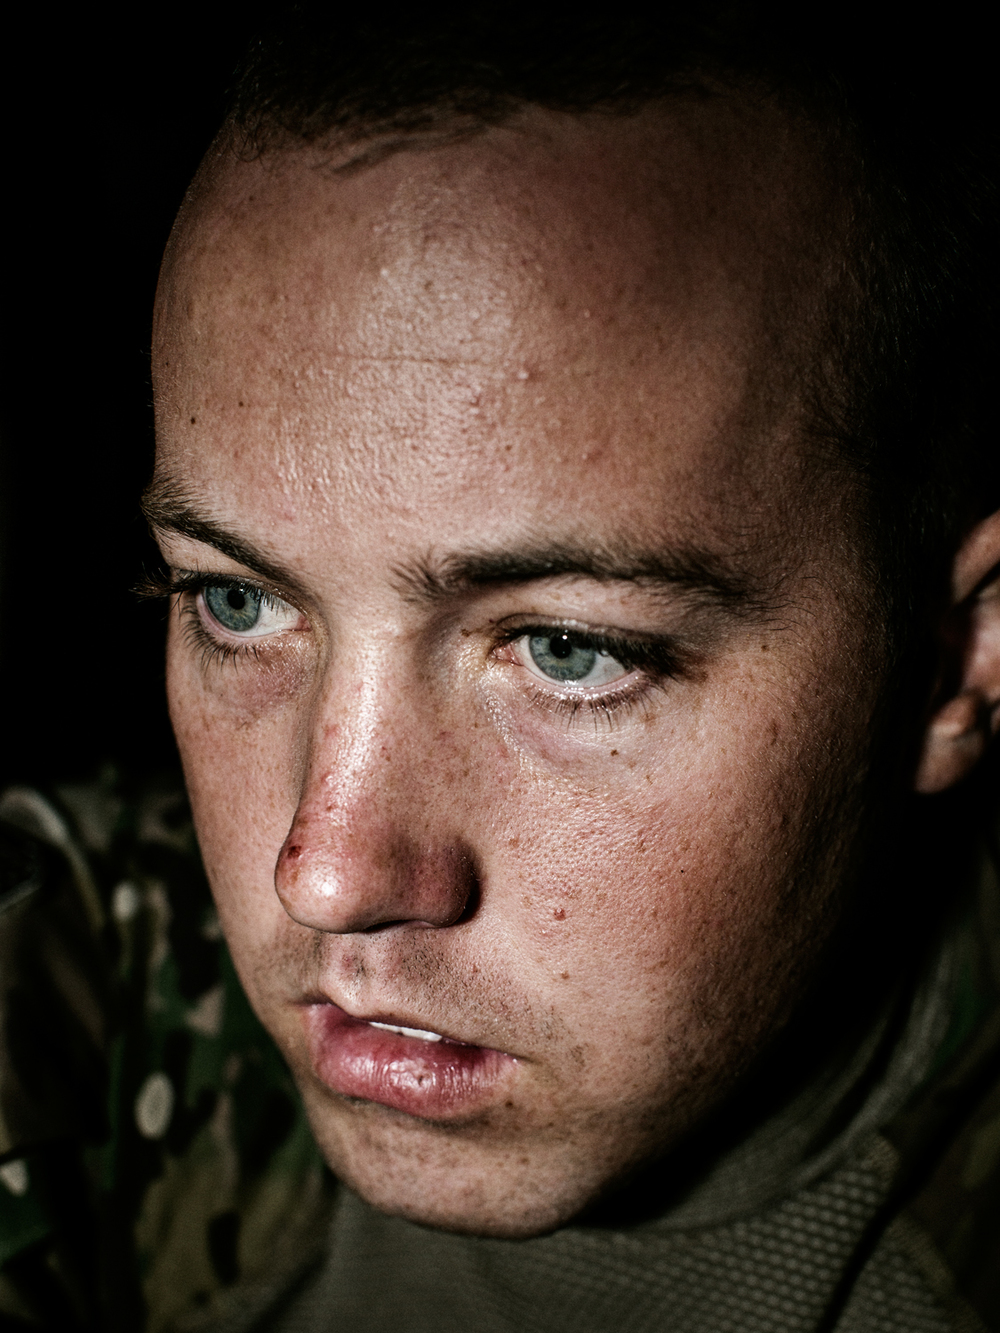 'SOLDIERS SKYPING, COMBAT POST MARGAH, AFGHANISTAN' for Time Magazine:   U.S. Army Lieutenant Andrew Addis.